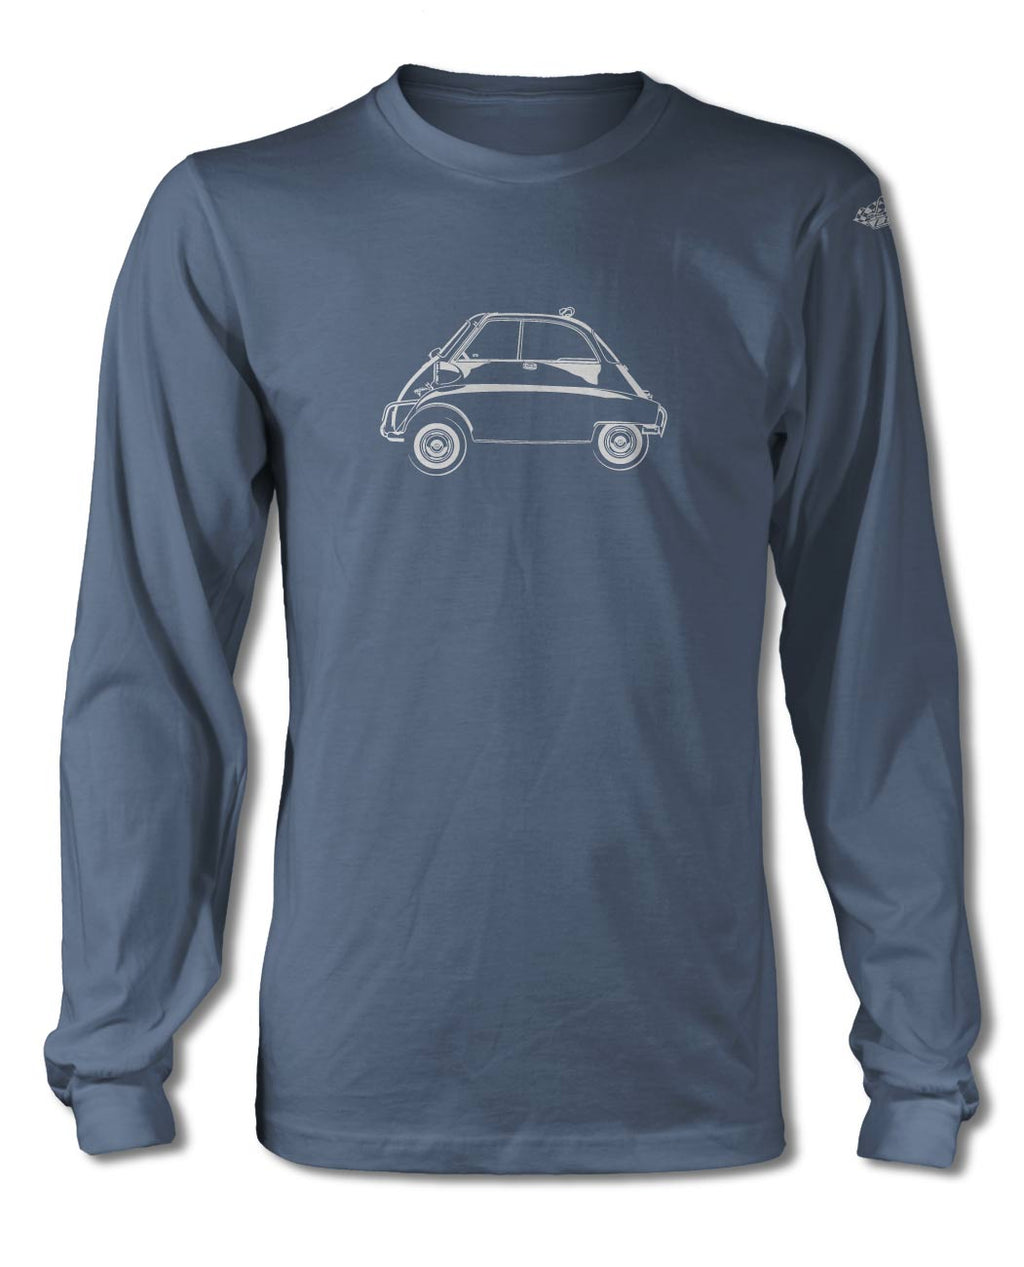 BMW Isetta T-Shirt - Long Sleeves - Side View